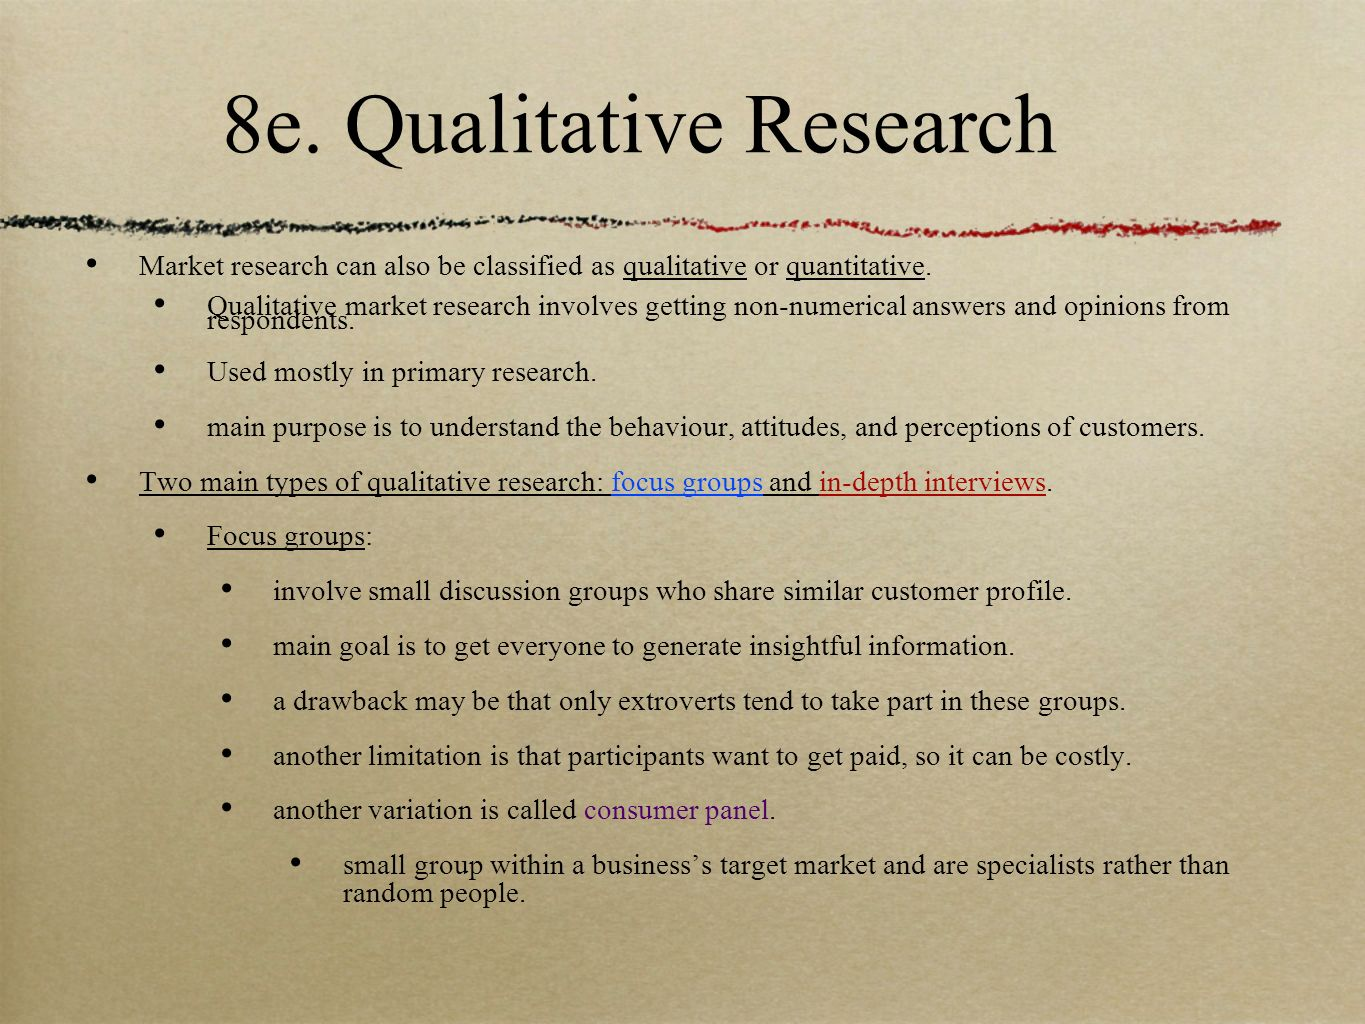 justification for qualitative research in organisations Example of a problem statement in qualitative research  justifications for qualitative research in organisations: problem justification for research.